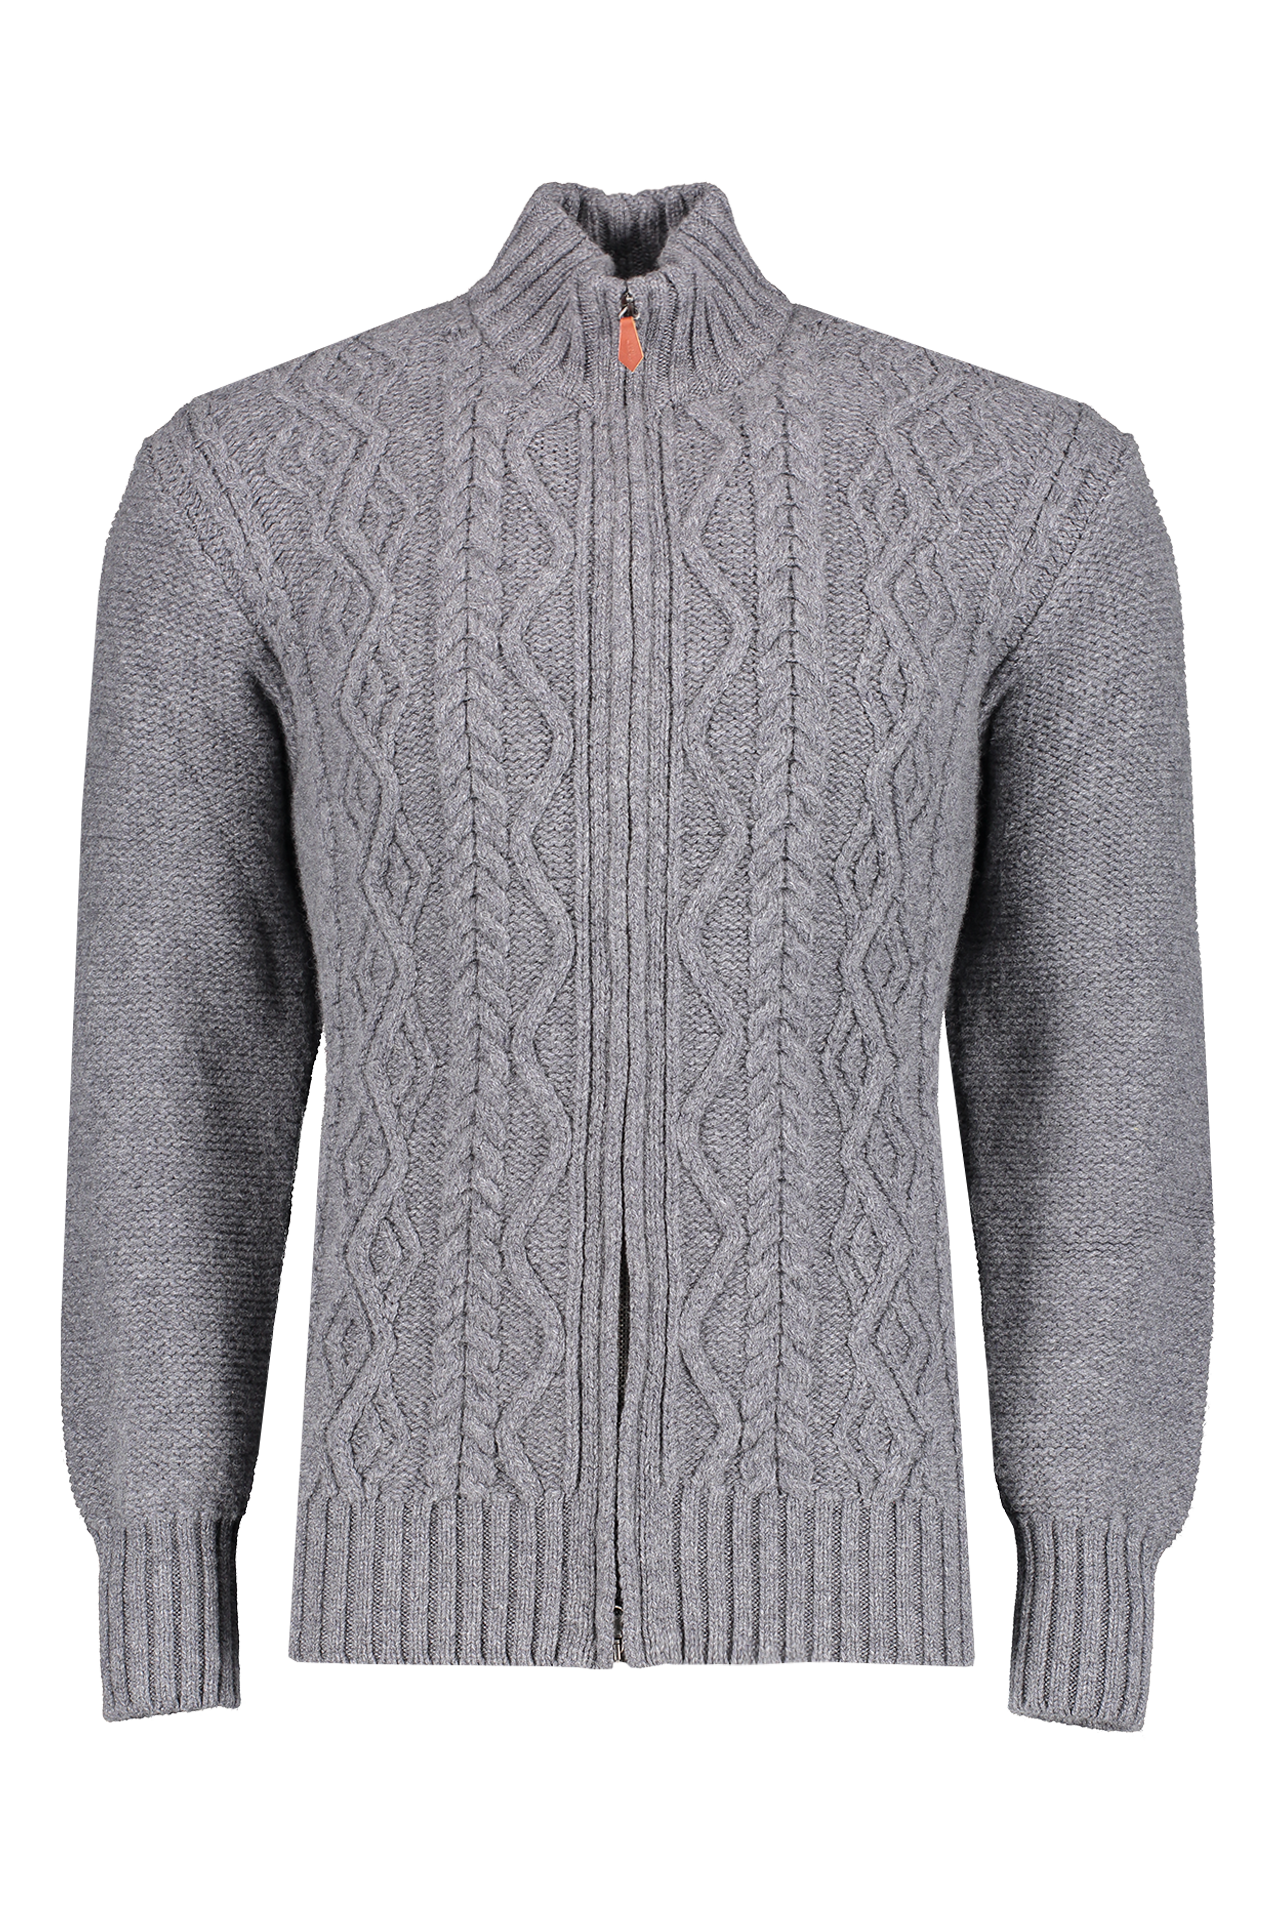 Front view image of Inis Miàn Aran Cable Knit Zip Cardigan Sweater Grey